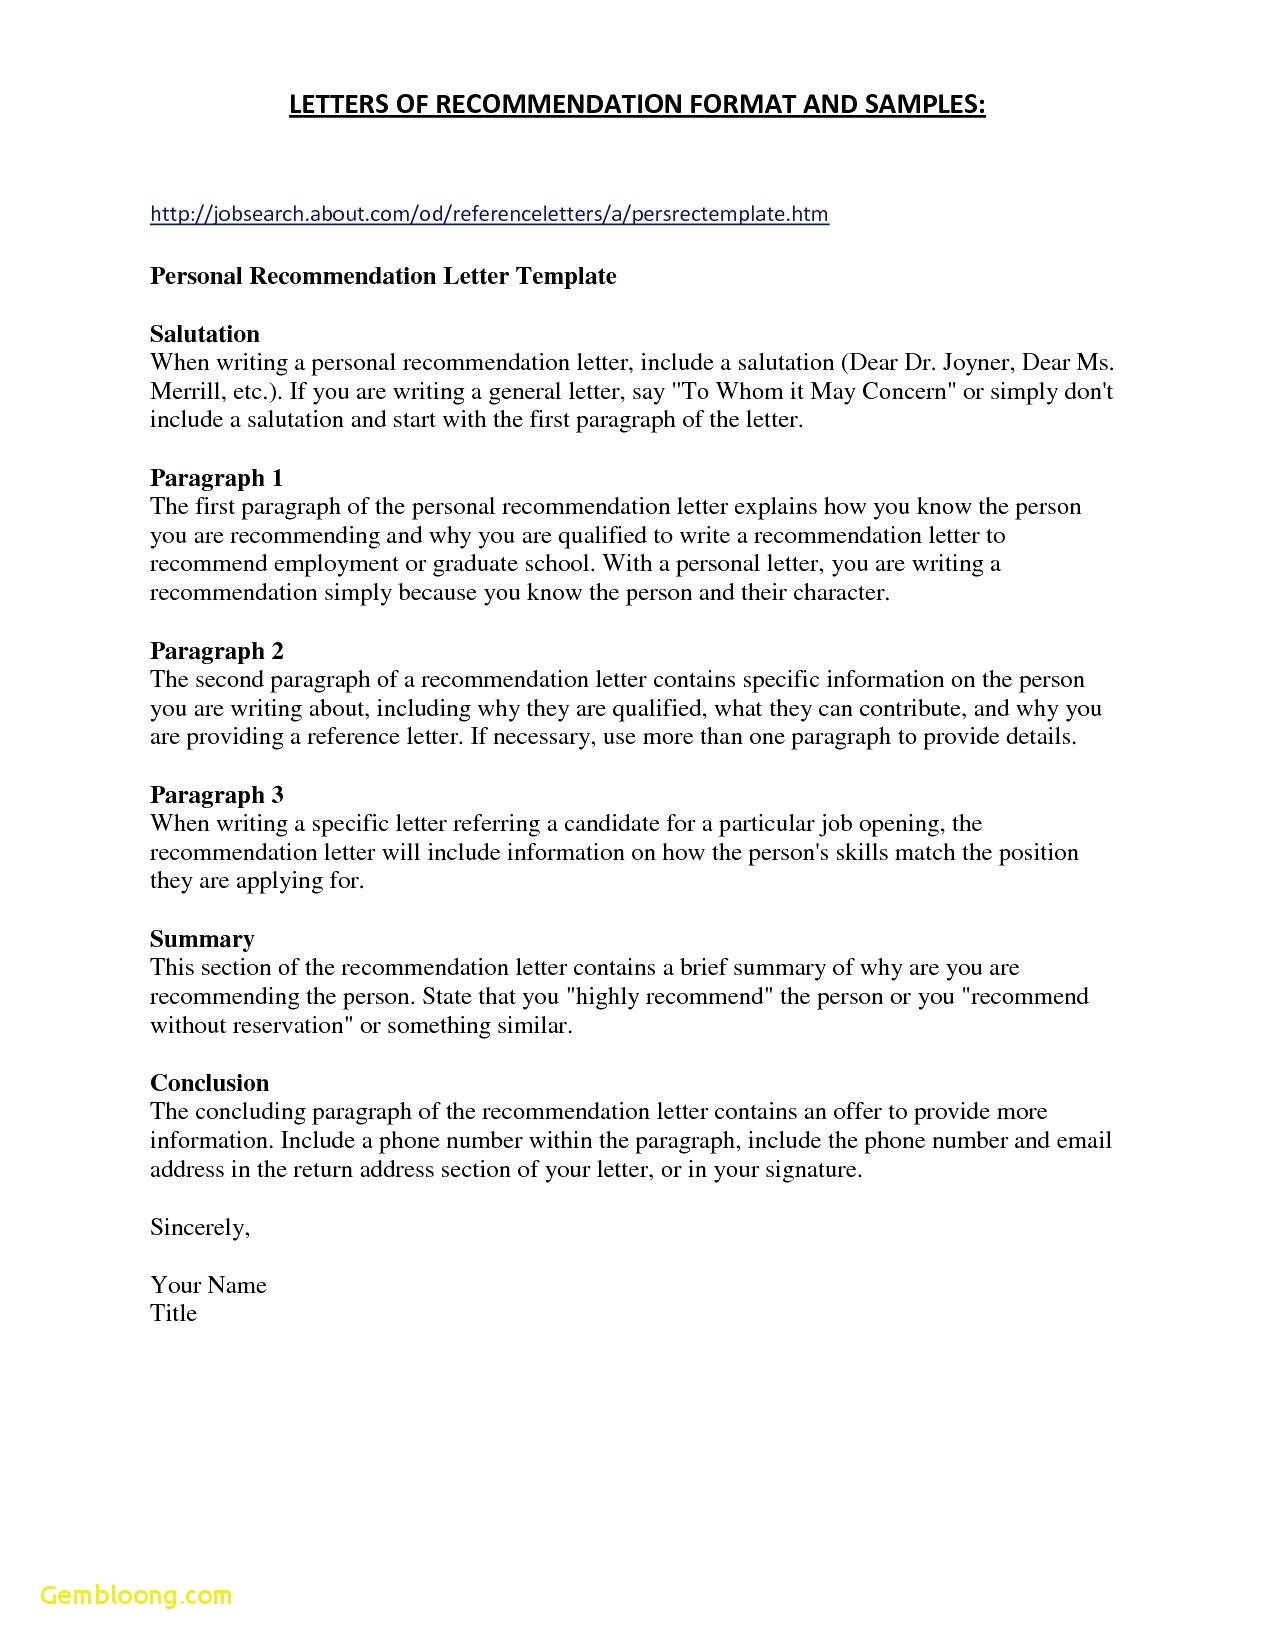 School Reference Letter Template - Job Re Mendation Letter Template Best Refrence format Job